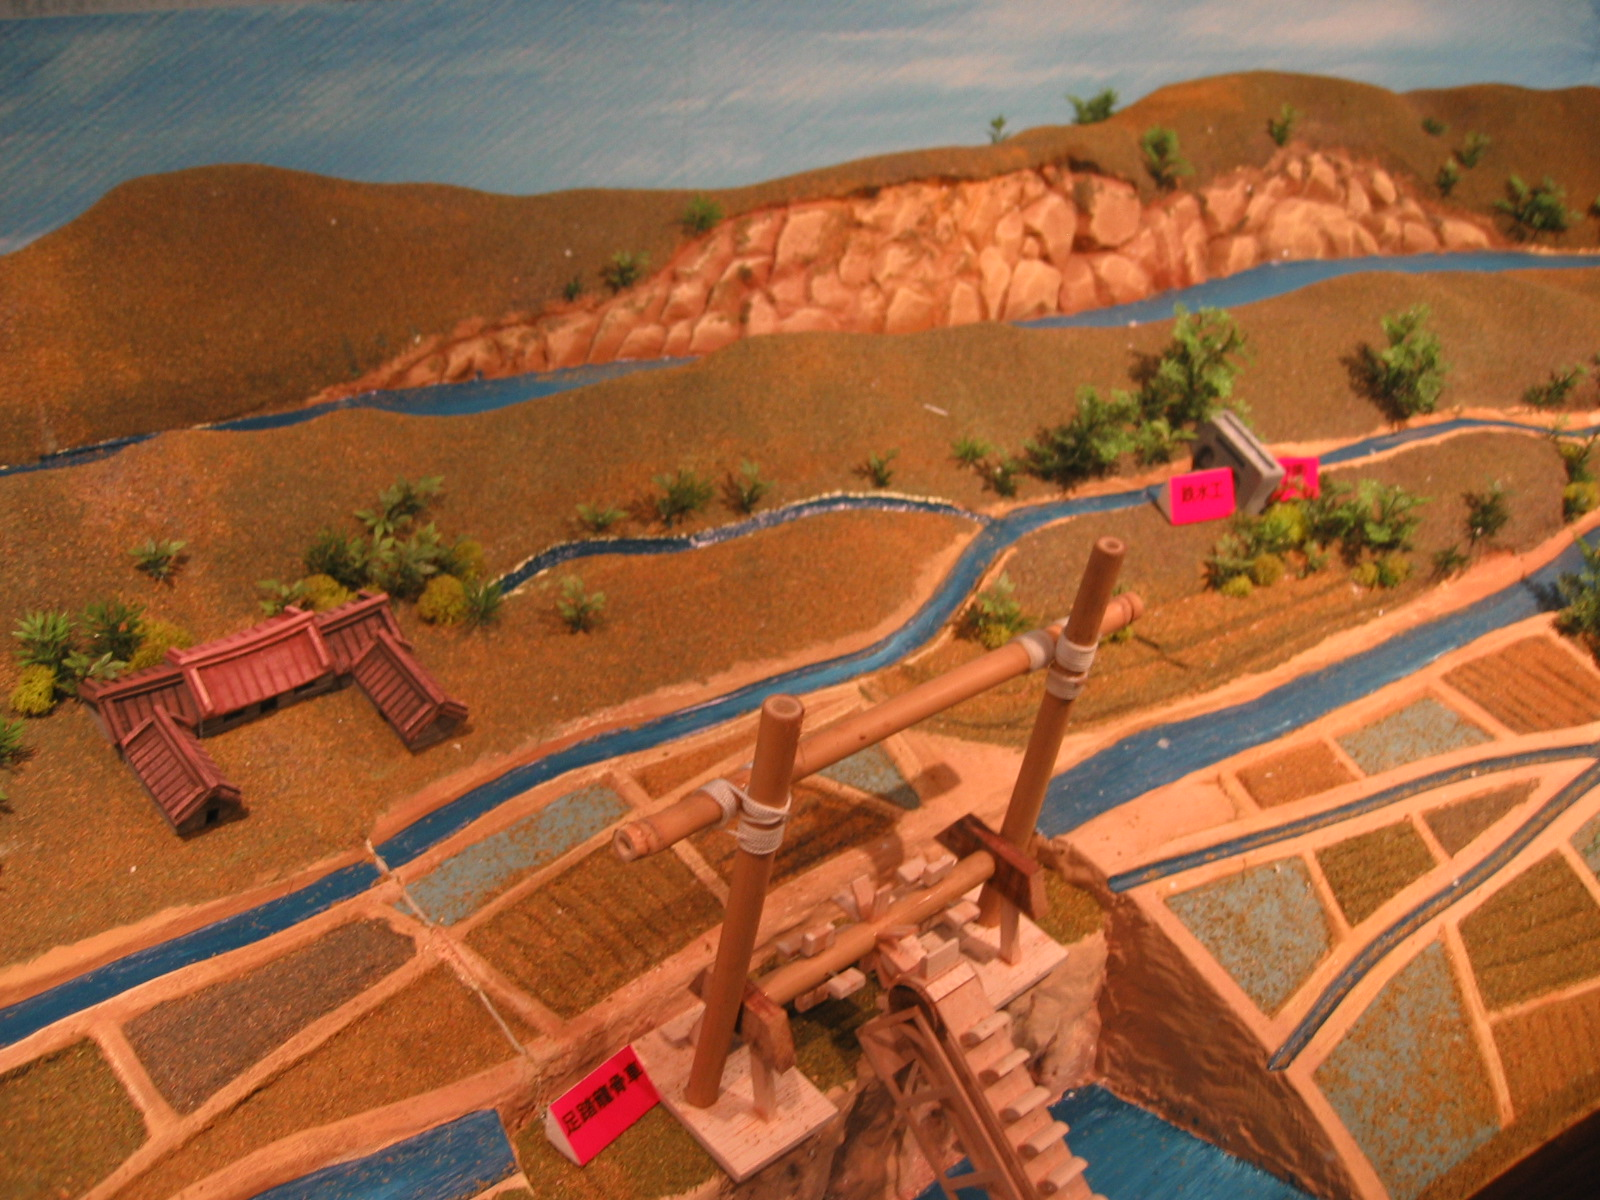 A model of the Liukung irrigation canals at the exhibition